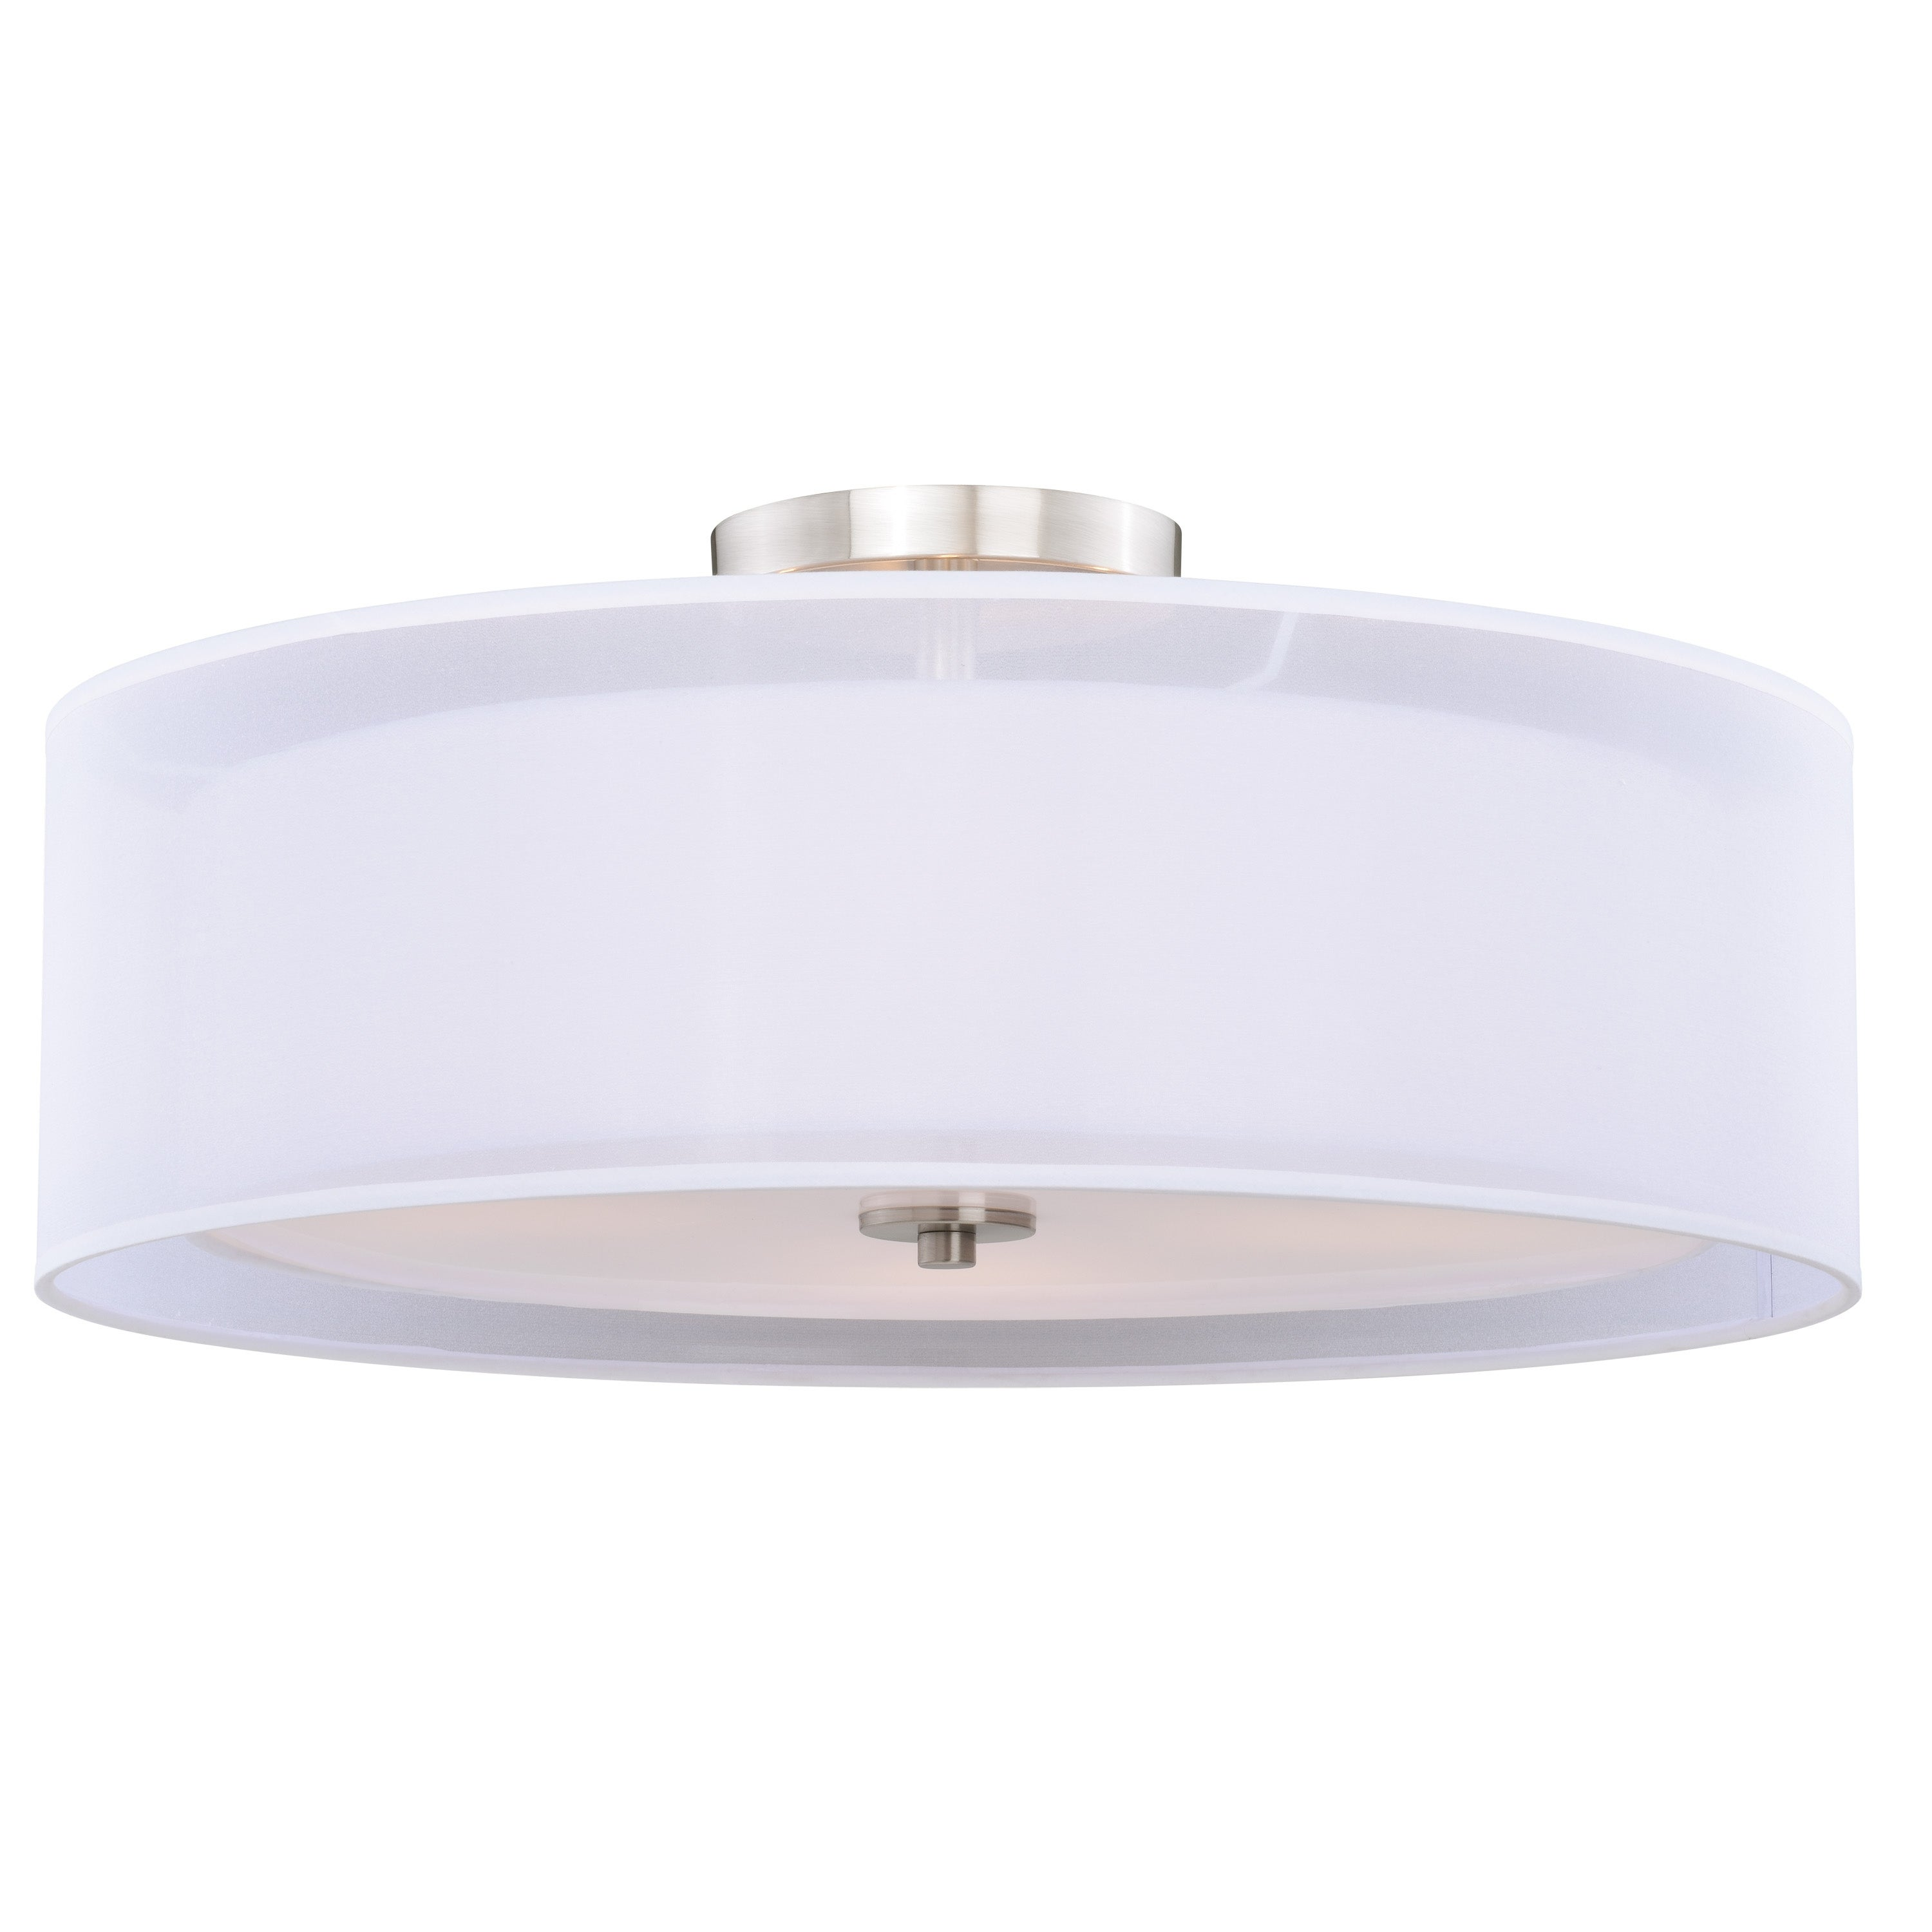 Image of: Shop Black Friday Deals On Nuage 24 In W Satin Nickel Mid Century Modern Drum Semi Flush Mount Ceiling Light White Fabric 24 In W X 10 5 In H X 10 5 In D Overstock 20985859